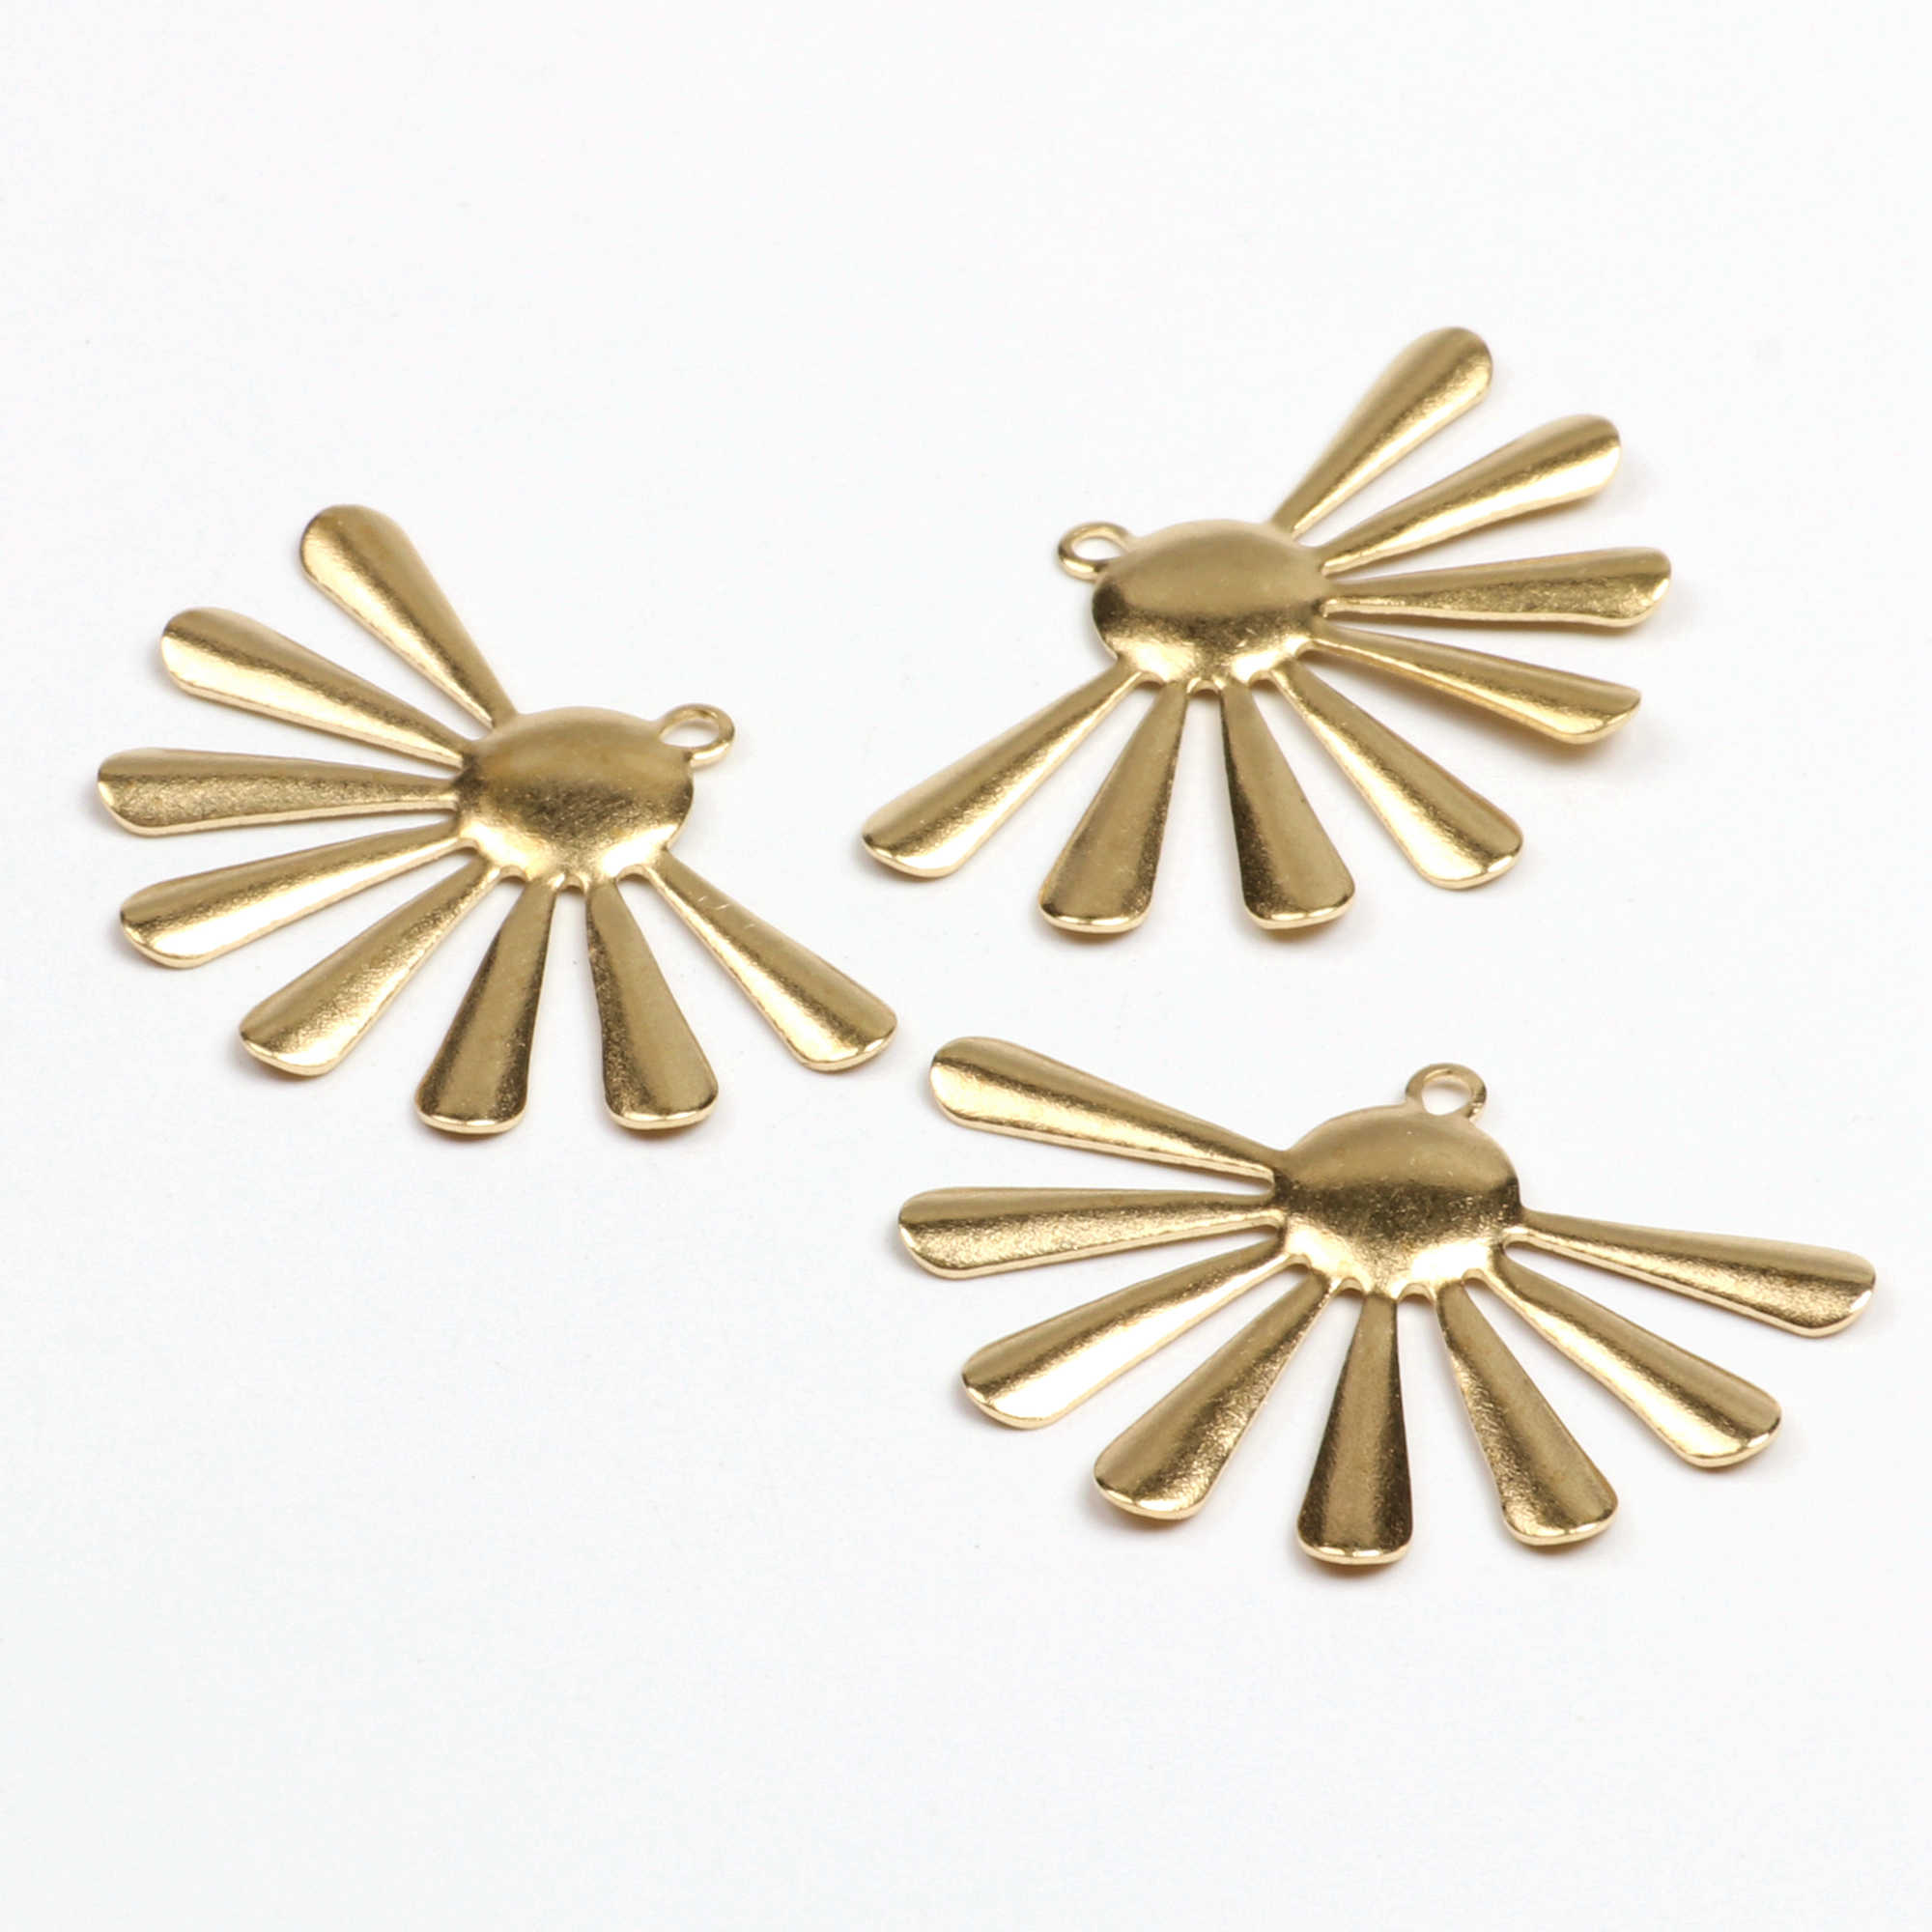 Brass Textured Drop  Charms MT220 Raw  Brass 2 Hole Drop Circle Charms Findings 0.8x7.5x14.5 mm